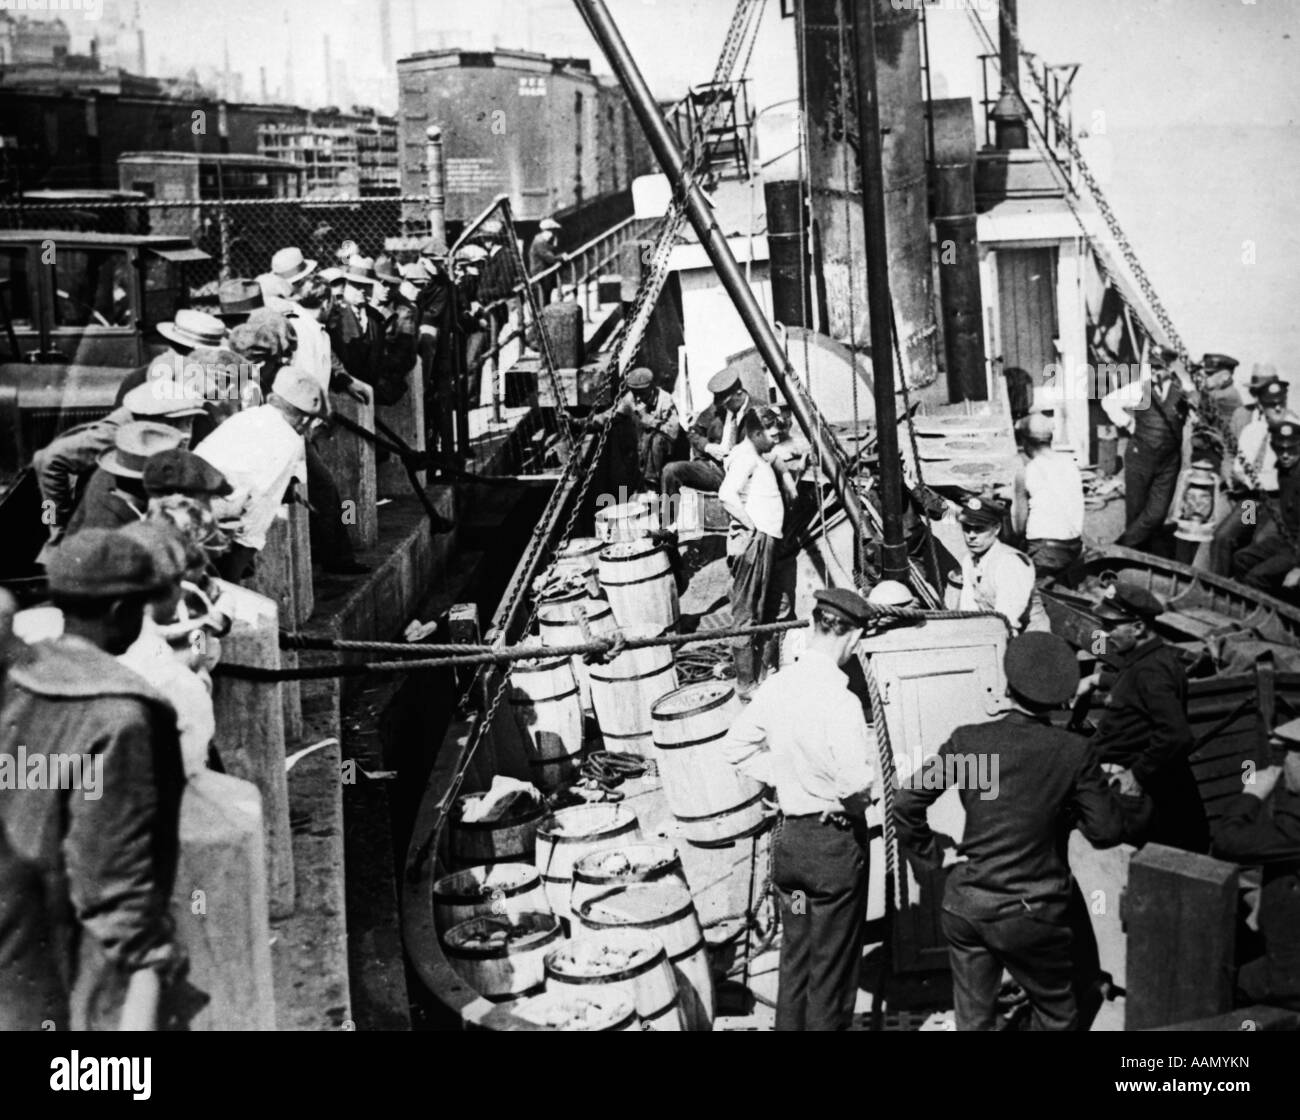 1920s PROHIBITION JUNE 8 1928 OFFICERS ABOARD CAPTURED TUG GERONIMO SEIZE 500 CASES CHAMPAGNE 1000 OF BEER DETROIT - Stock Image